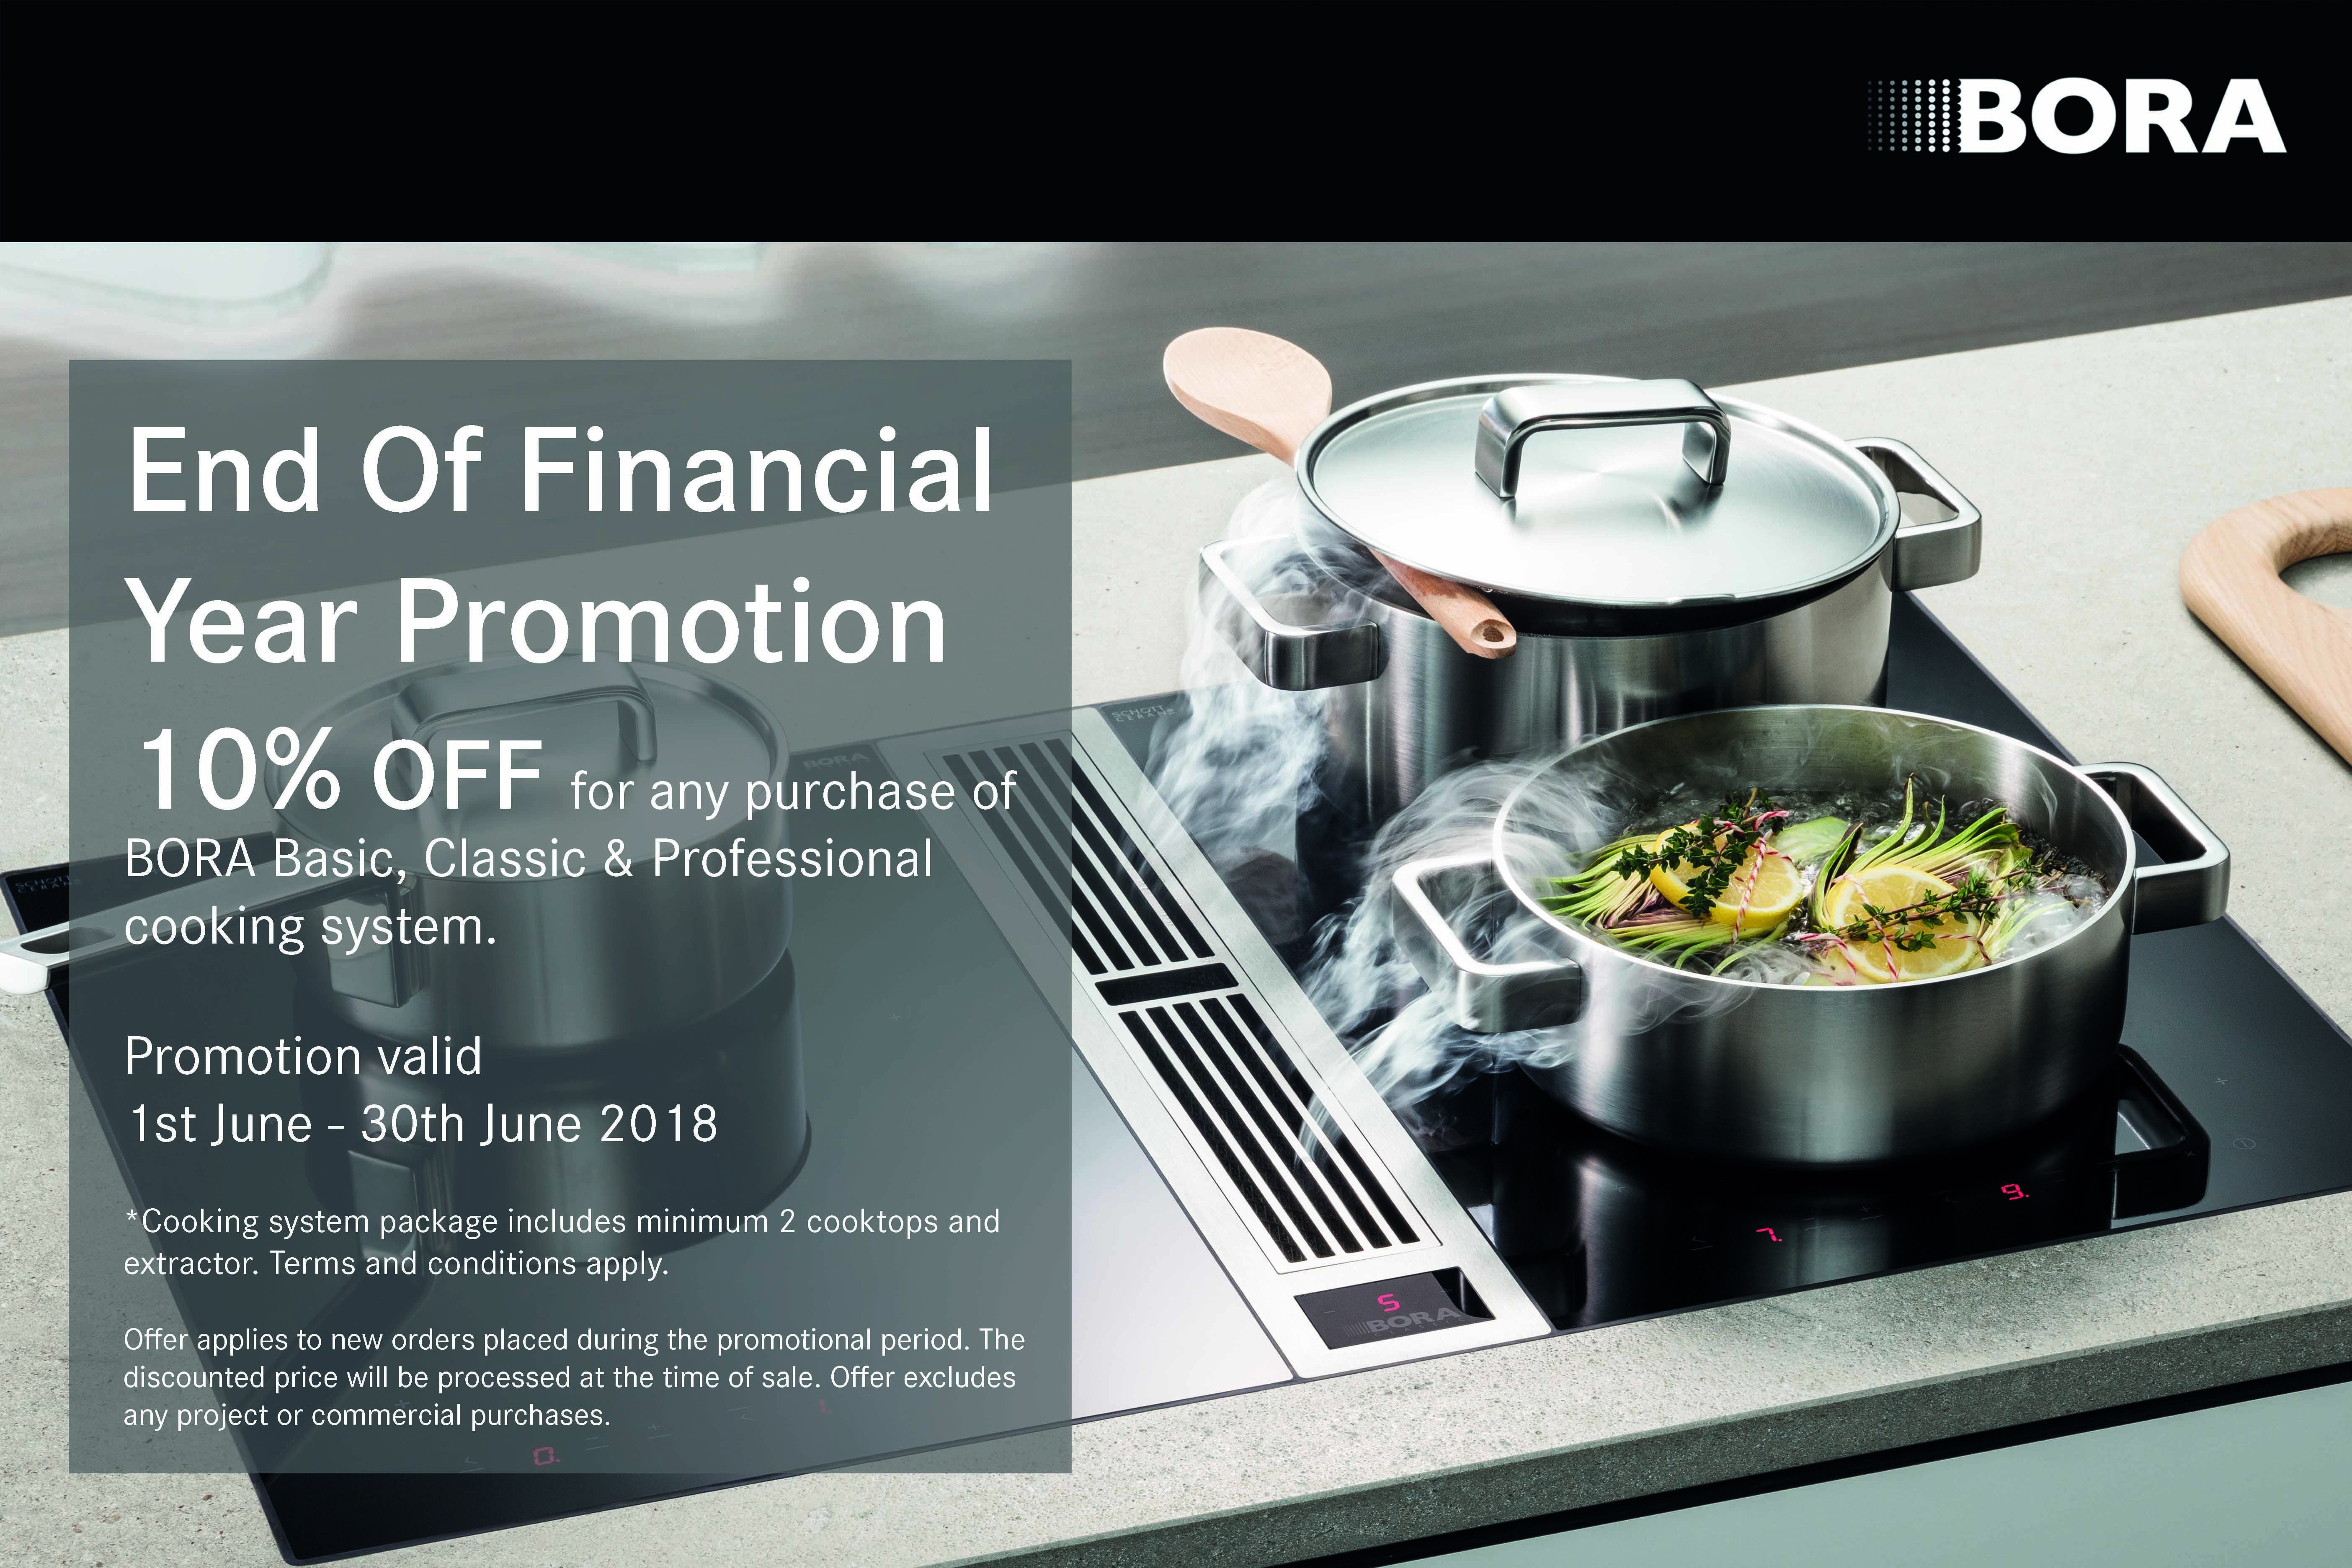 320 Specials Promotions Prestige Appliances Chatswood Ideas Good Advice The Prestige Special Promotion